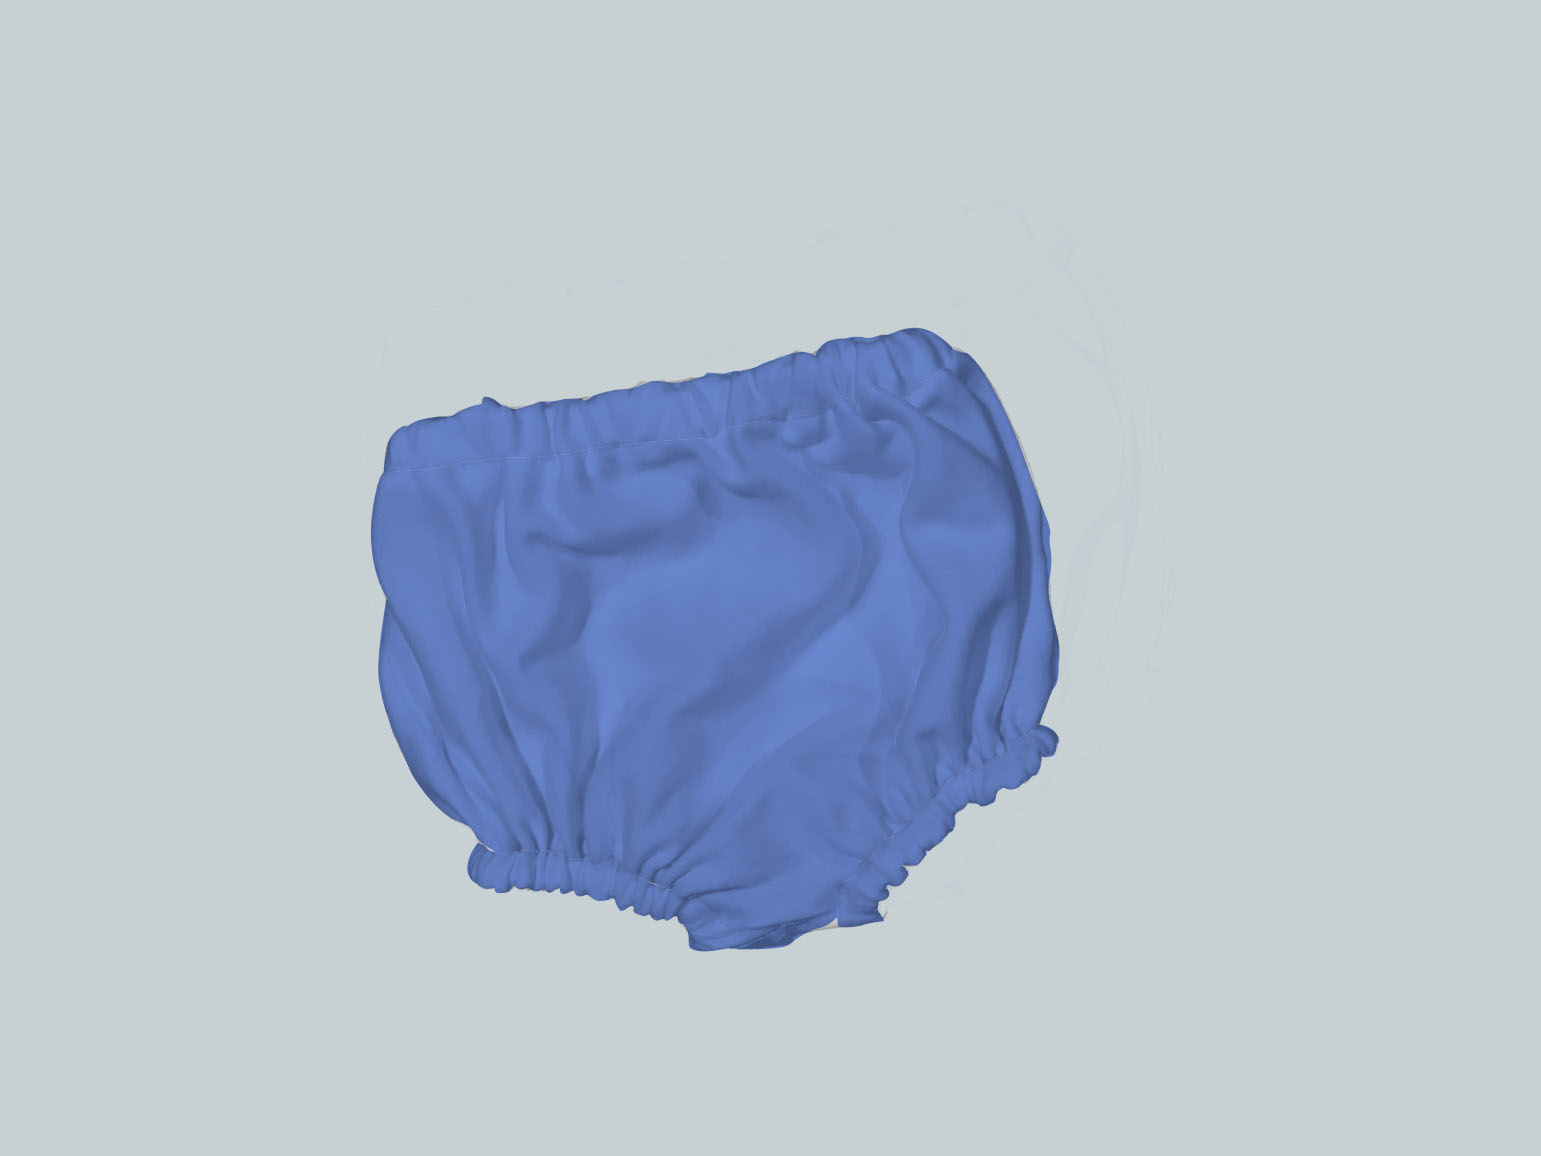 Bummies/Diaper Cover - Periwinkle